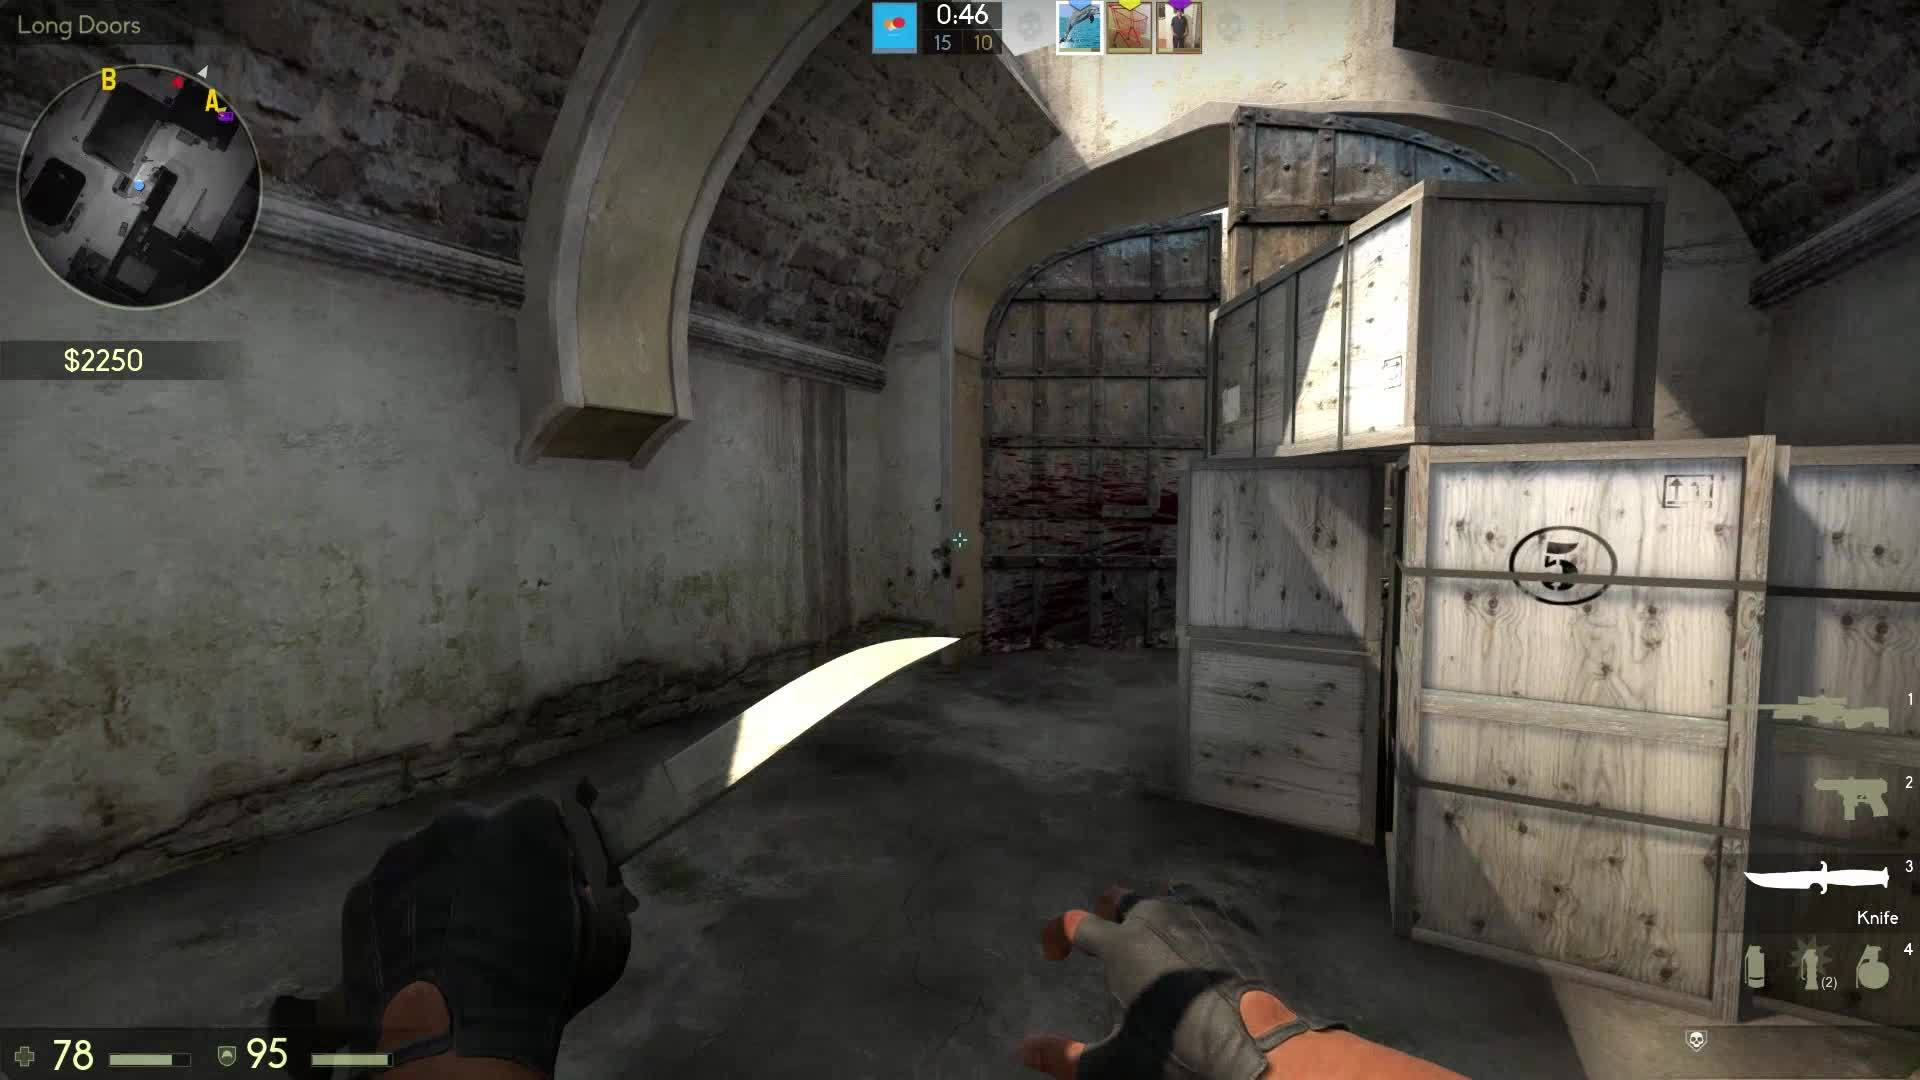 60fpsgifs, Sneaky Bhop at the end of the round GIFs